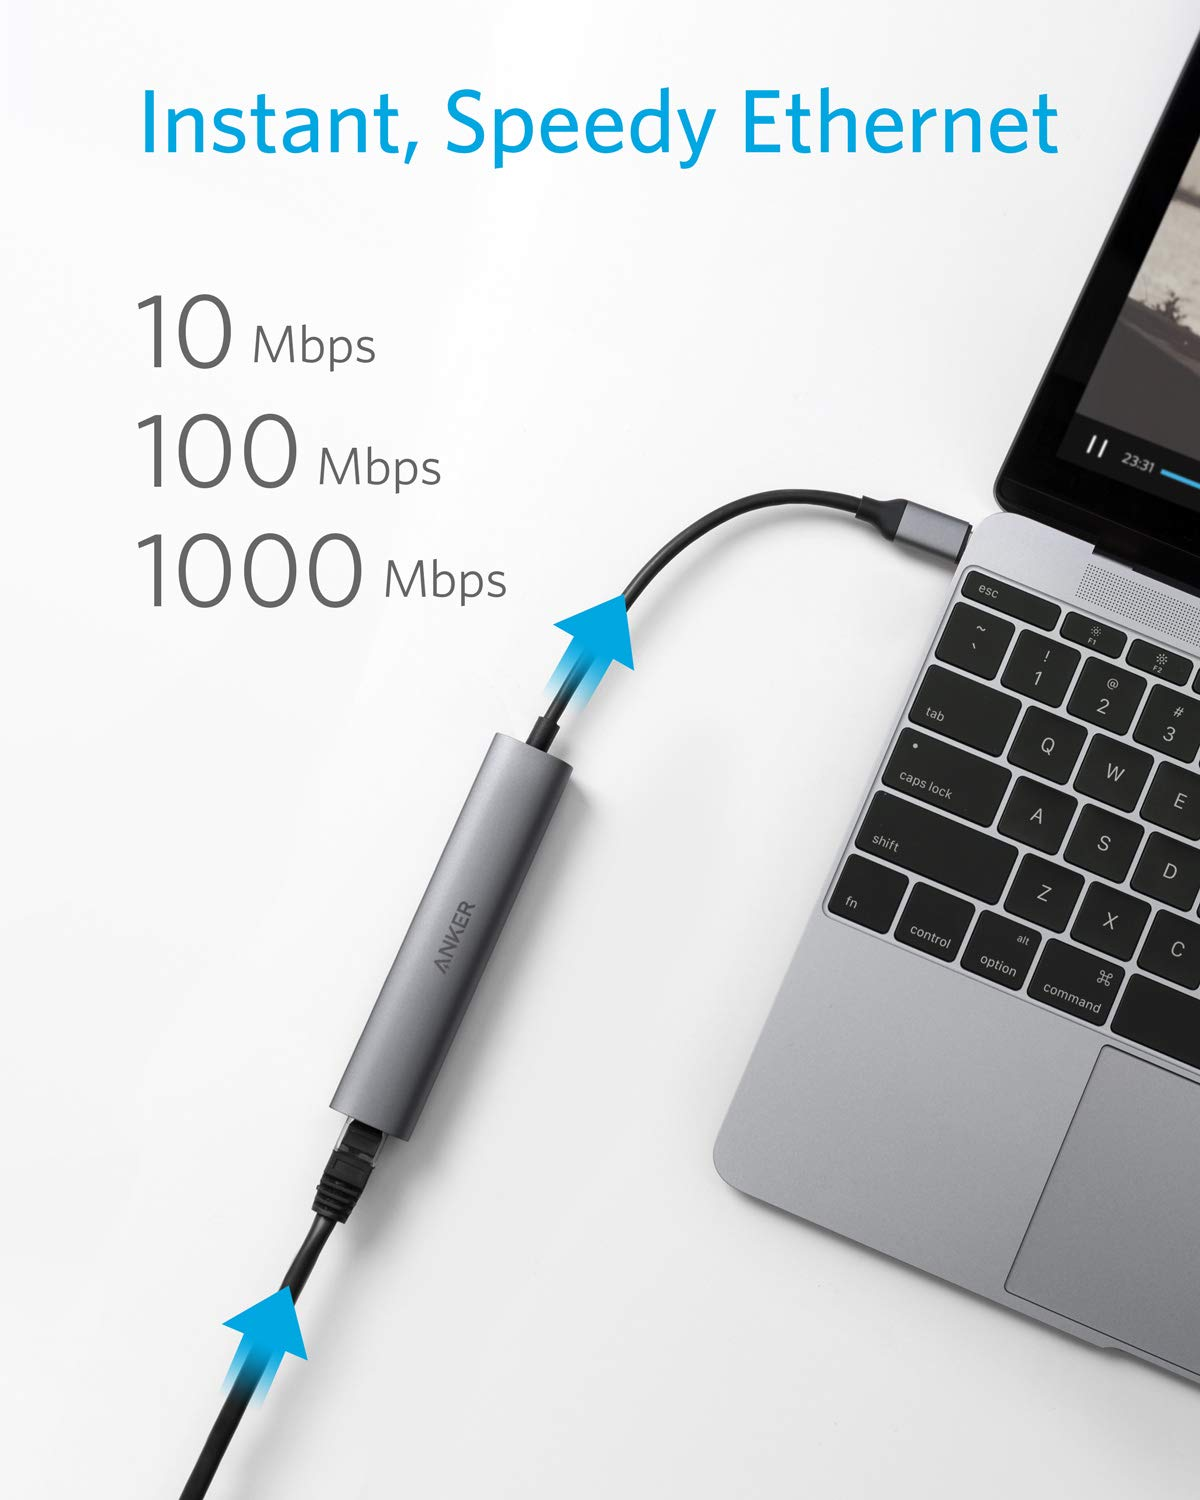 B071G83L1J Anker USB C Hub Adapter, 5-in-1 USB C Adapter with 4K USB C to HDMI, Ethernet Port, 3 USB 3.0 Ports, for MacBook Pro 2019/2018/2017, iPad Pro 2019/2018, ChromeBook, XPS, and More 61vAjHuyOrL